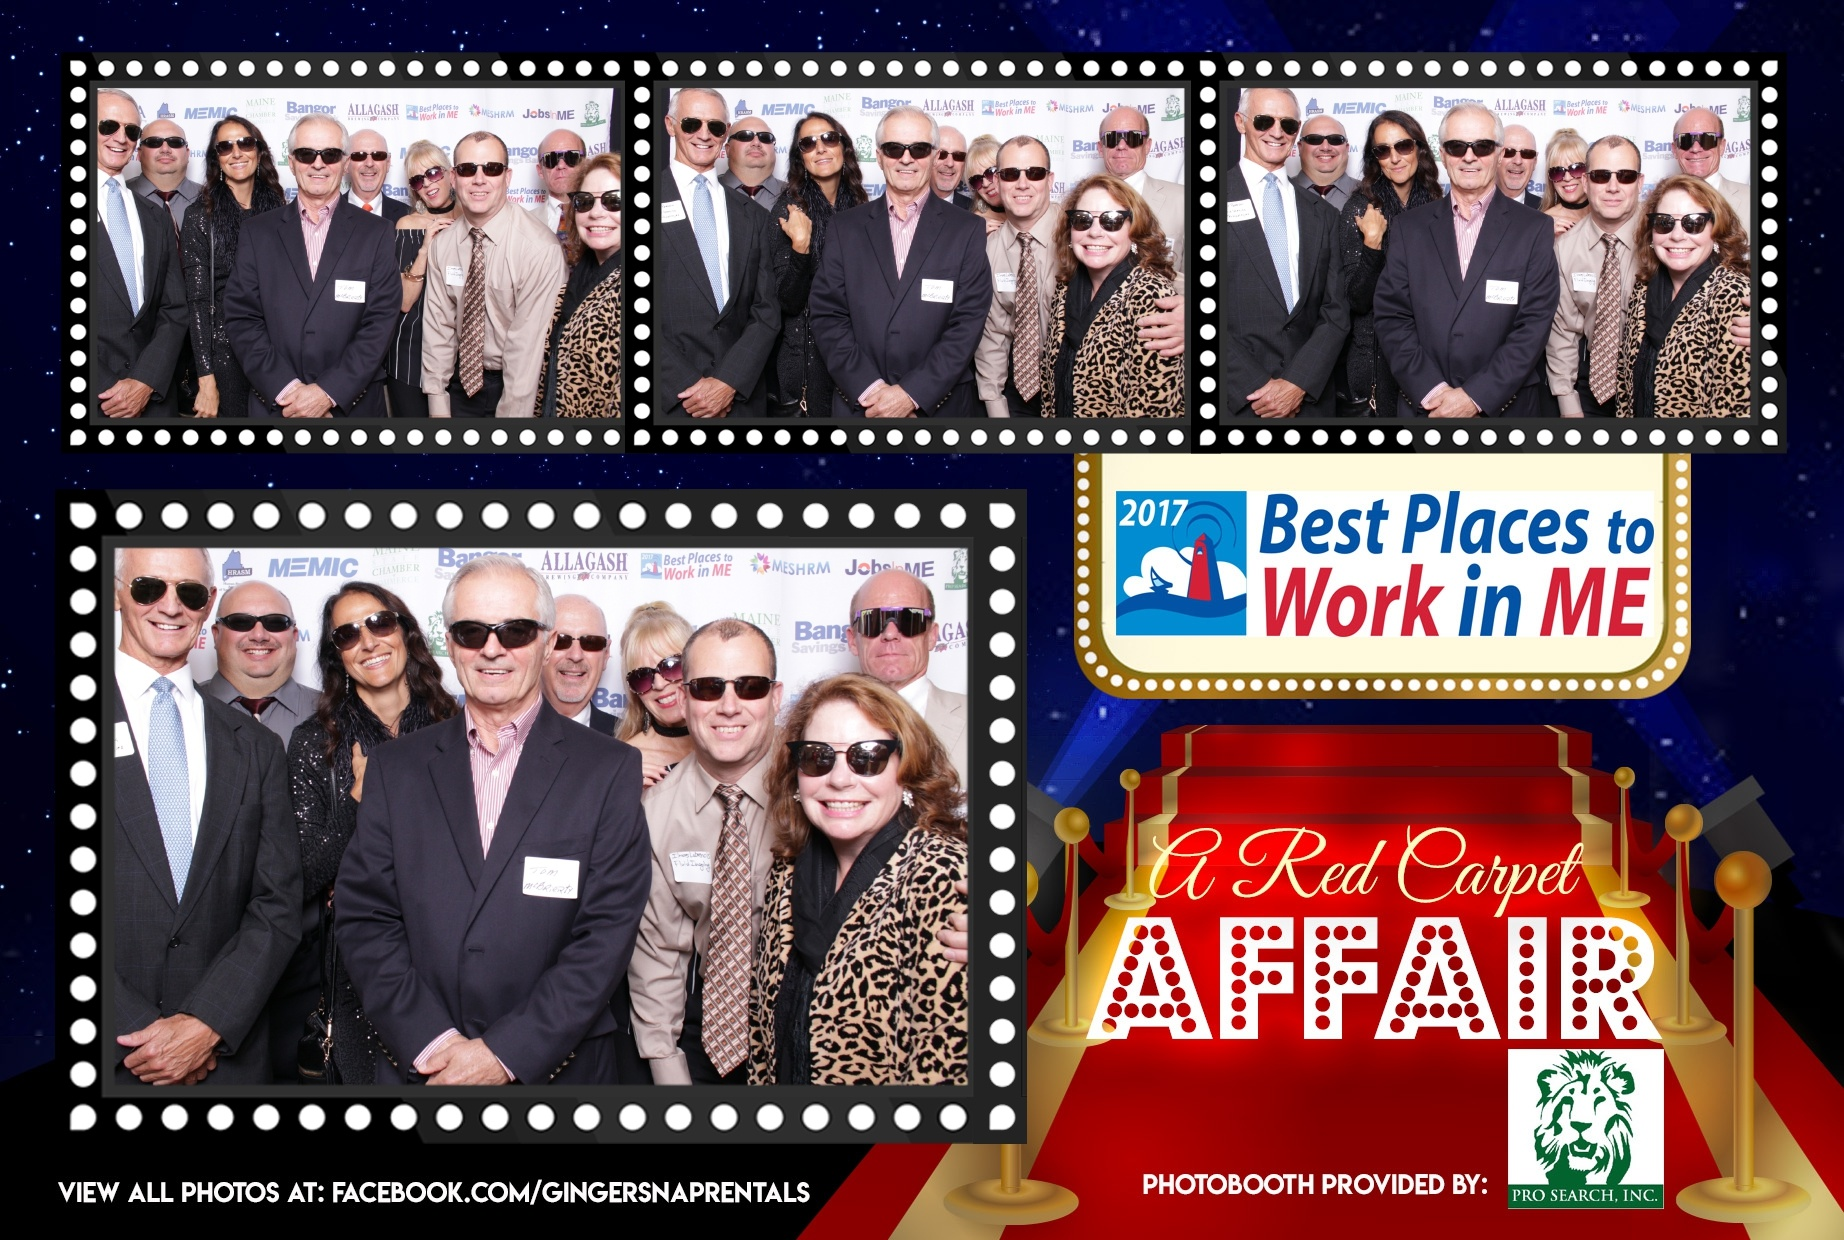 FIT Best Places to work photo booth.jpg